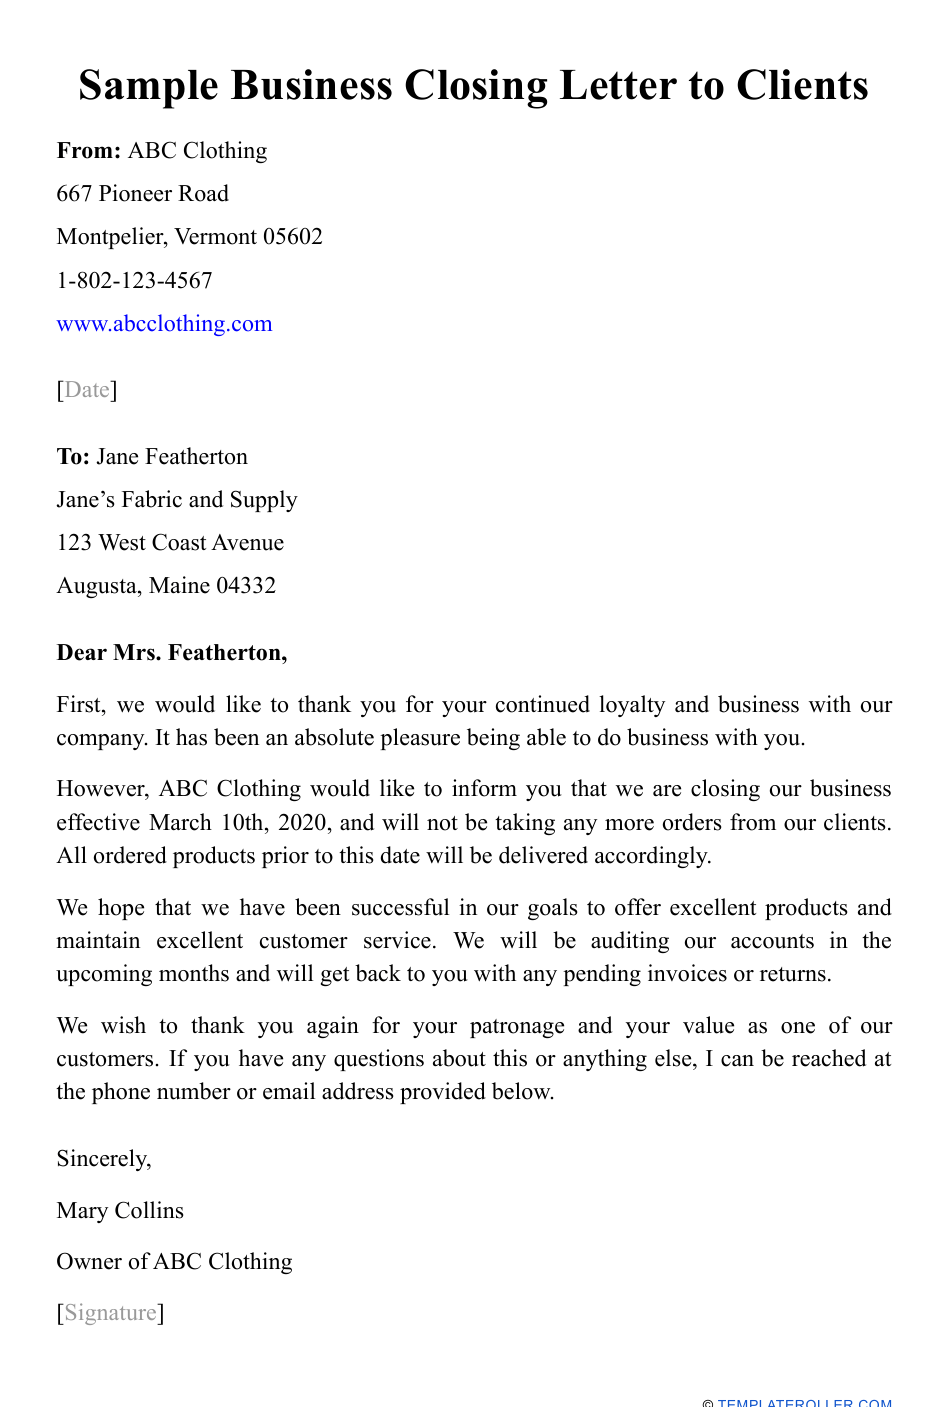 Sample Business Closing Letter To Clients Download